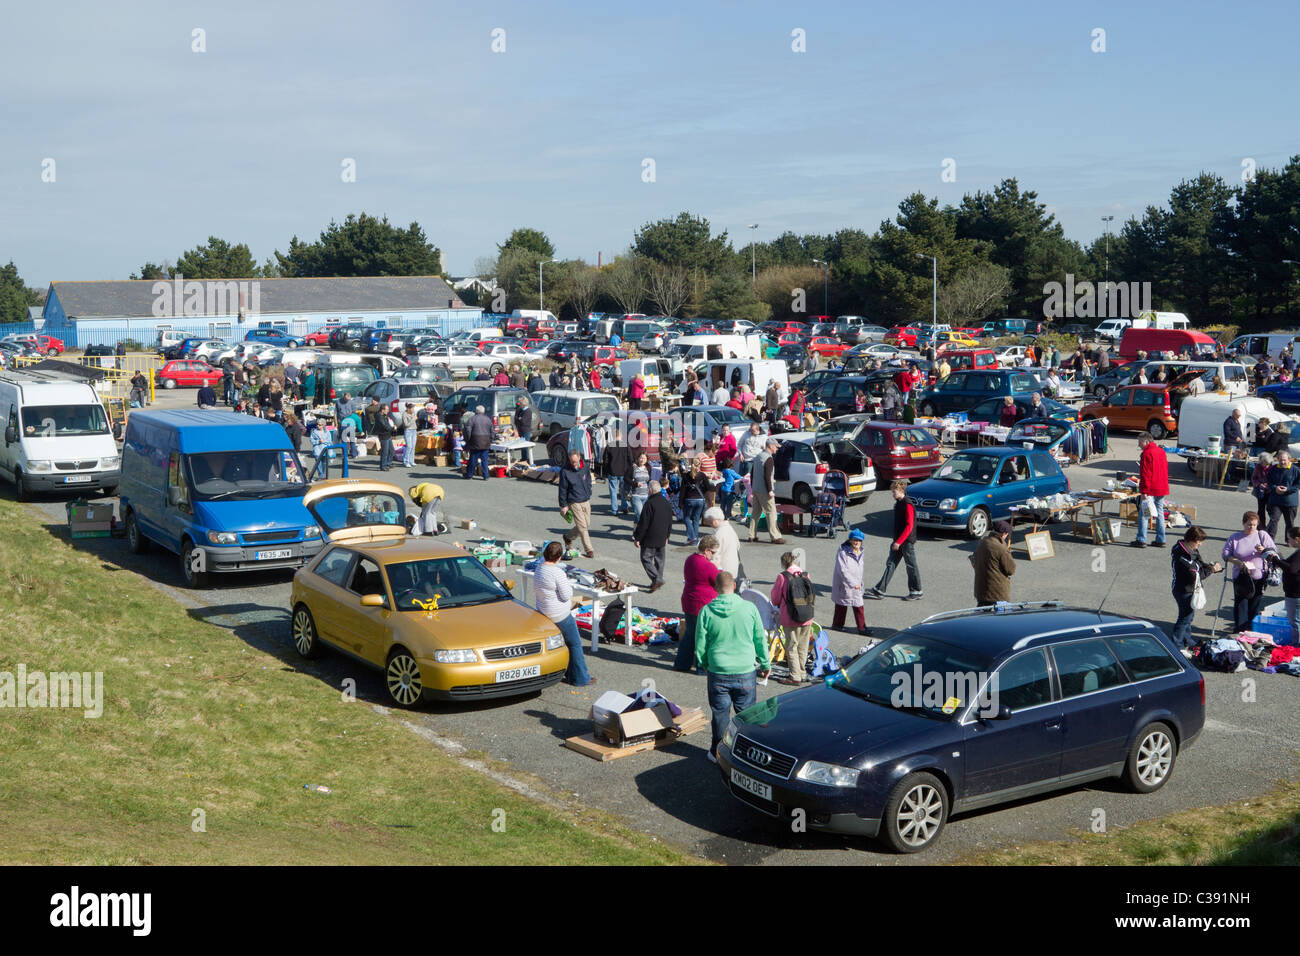 A car boot sale at the Carn Brea Leisure Centre car park in Pool near Redruth, Cornwall UK. - Stock Image